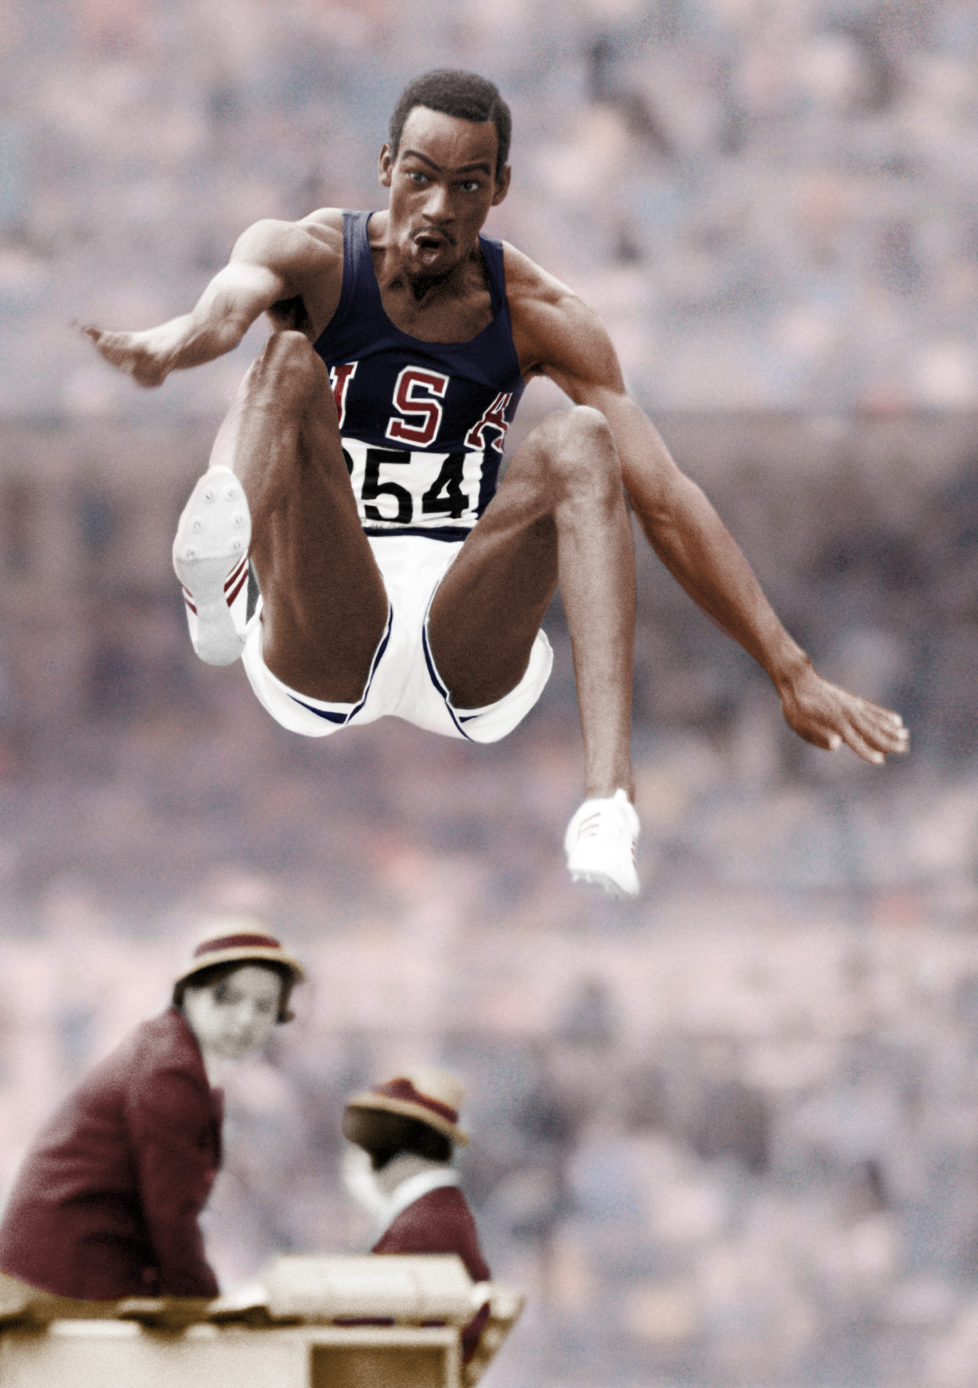 NOTE TO EDITORS; THIS ORIGINAL BLACK & WHITE IMAGE HAS BEEN DIGITALLY PROCESSED. Bob Beamon of the United States setting a new world record of 8.90 metres for the long jump during the Summer Olympic Games in Mexico City 18th October 1968. (Photo by Ed Lacey/Popperfoto/Getty Images)